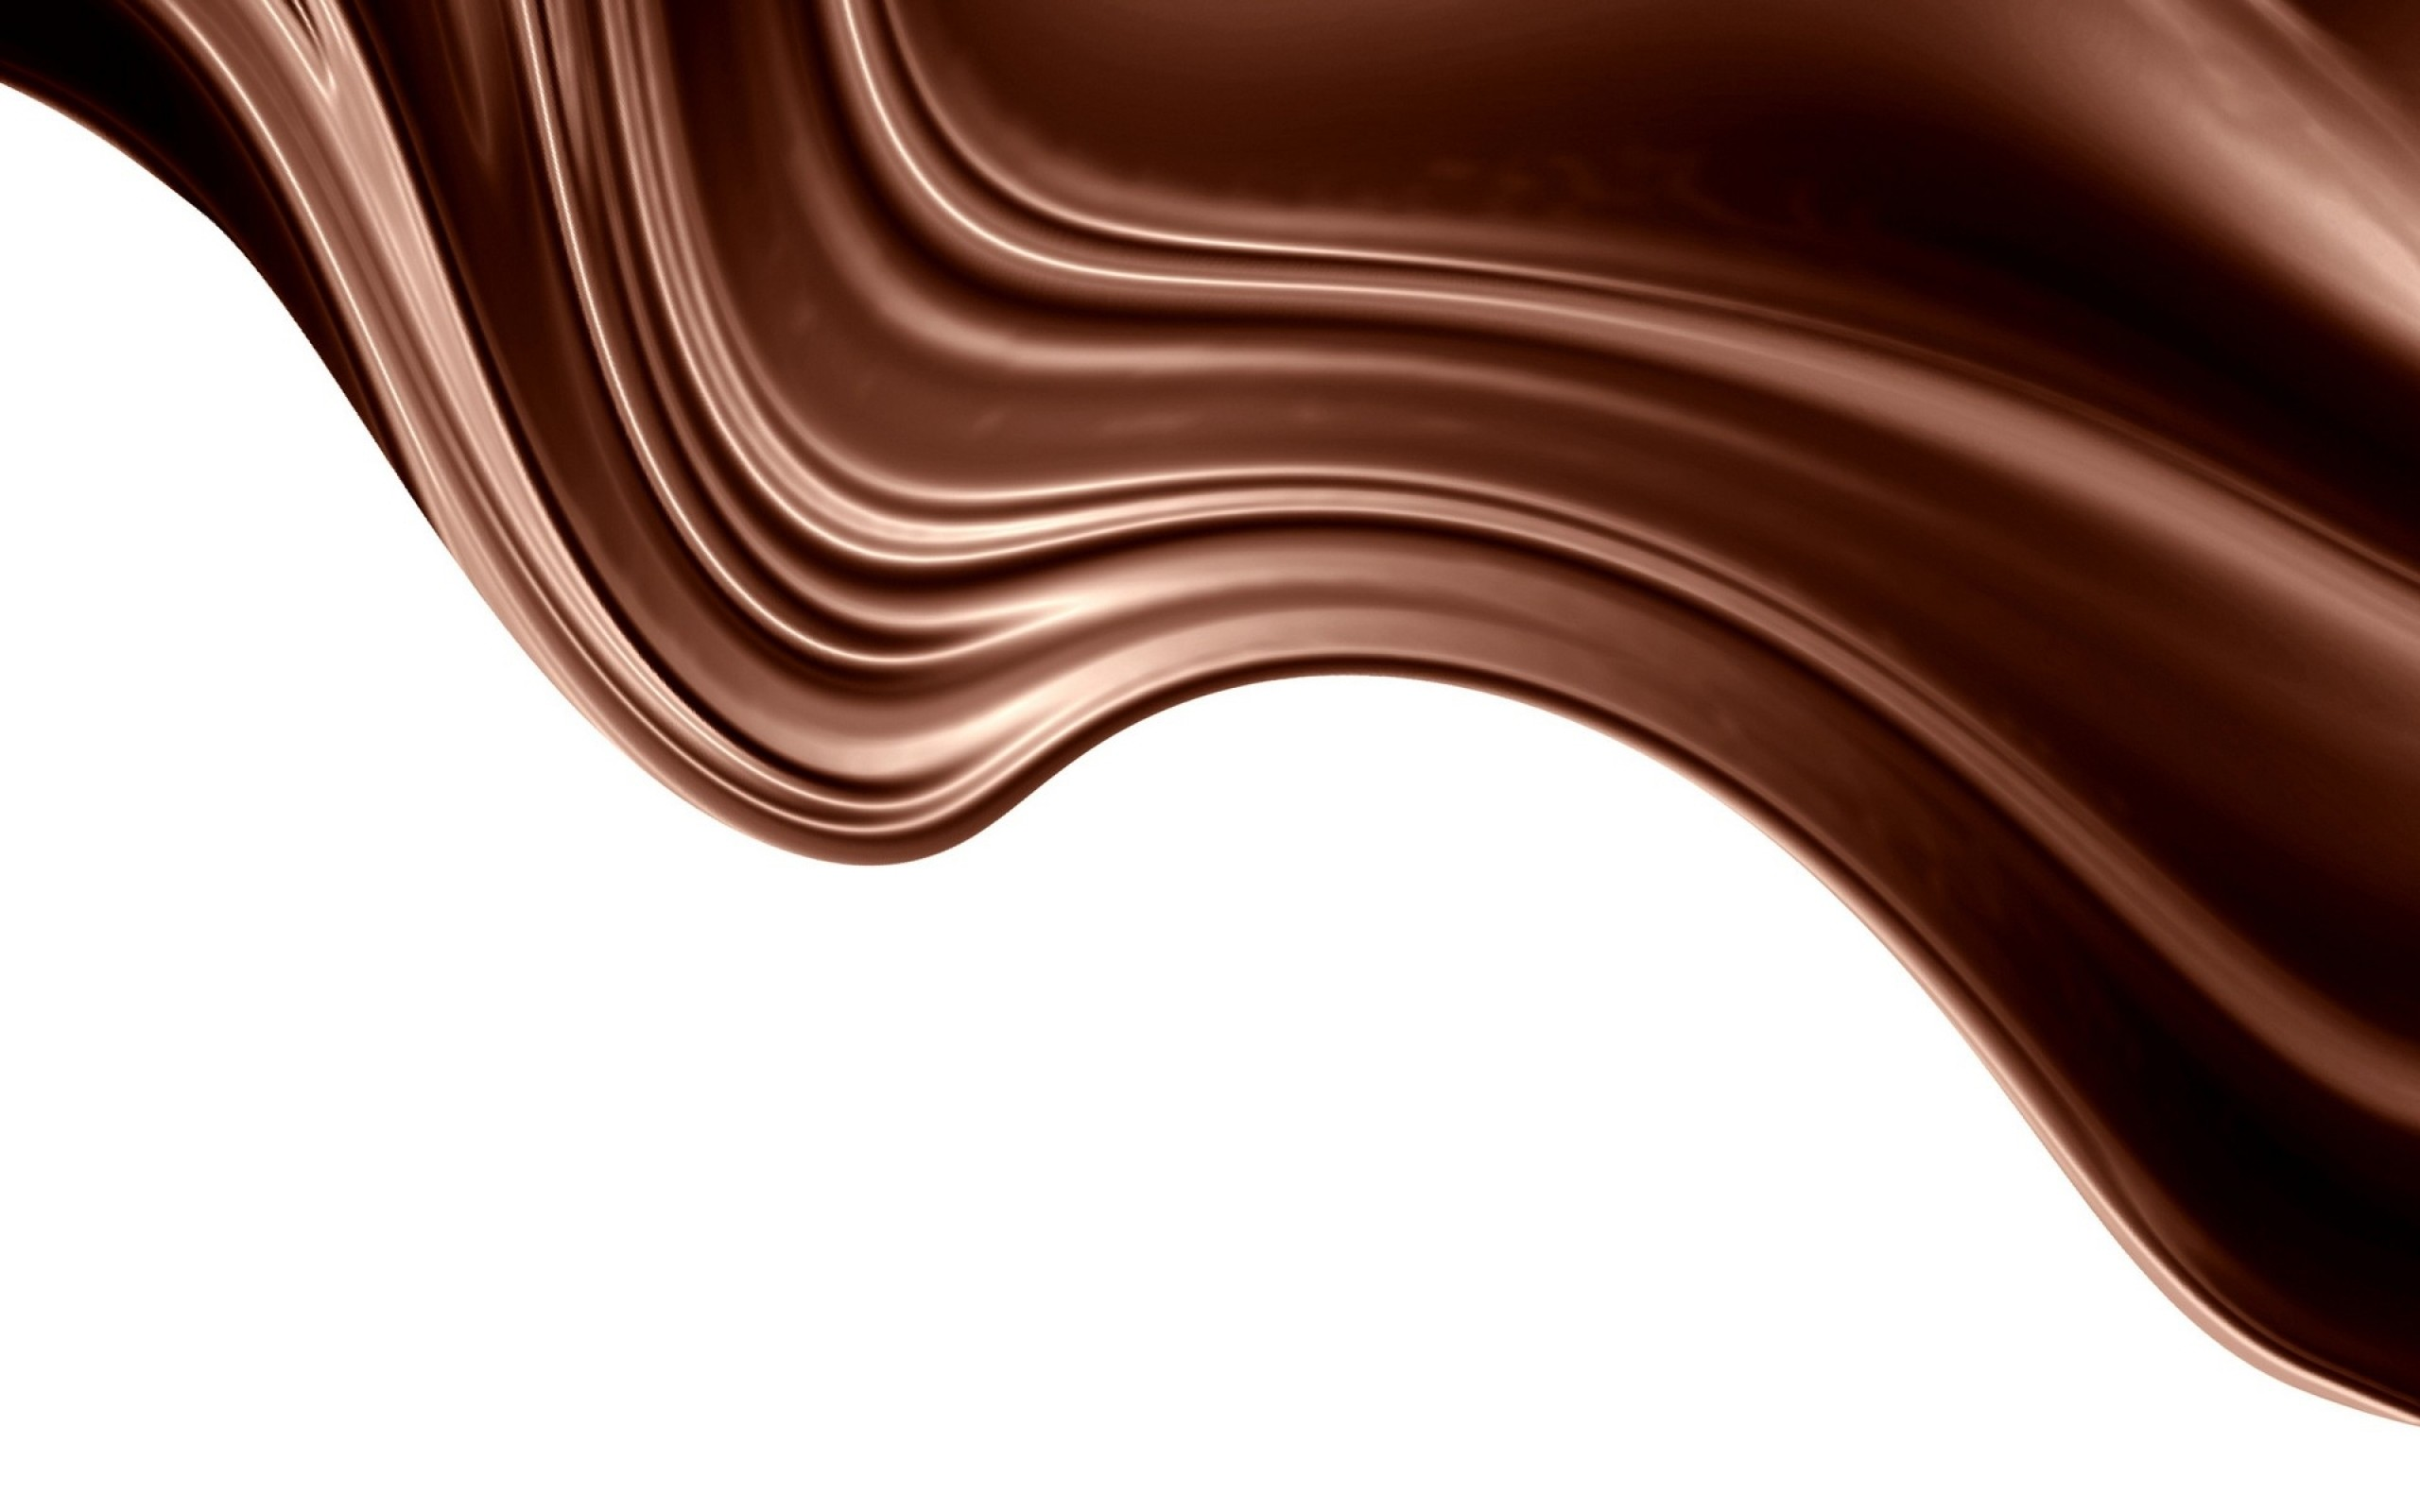 2560x1600 0  Chocolate Wallpapers  Chocolate Wallpapers For Desktop  Visit Chile HD Wallpapers